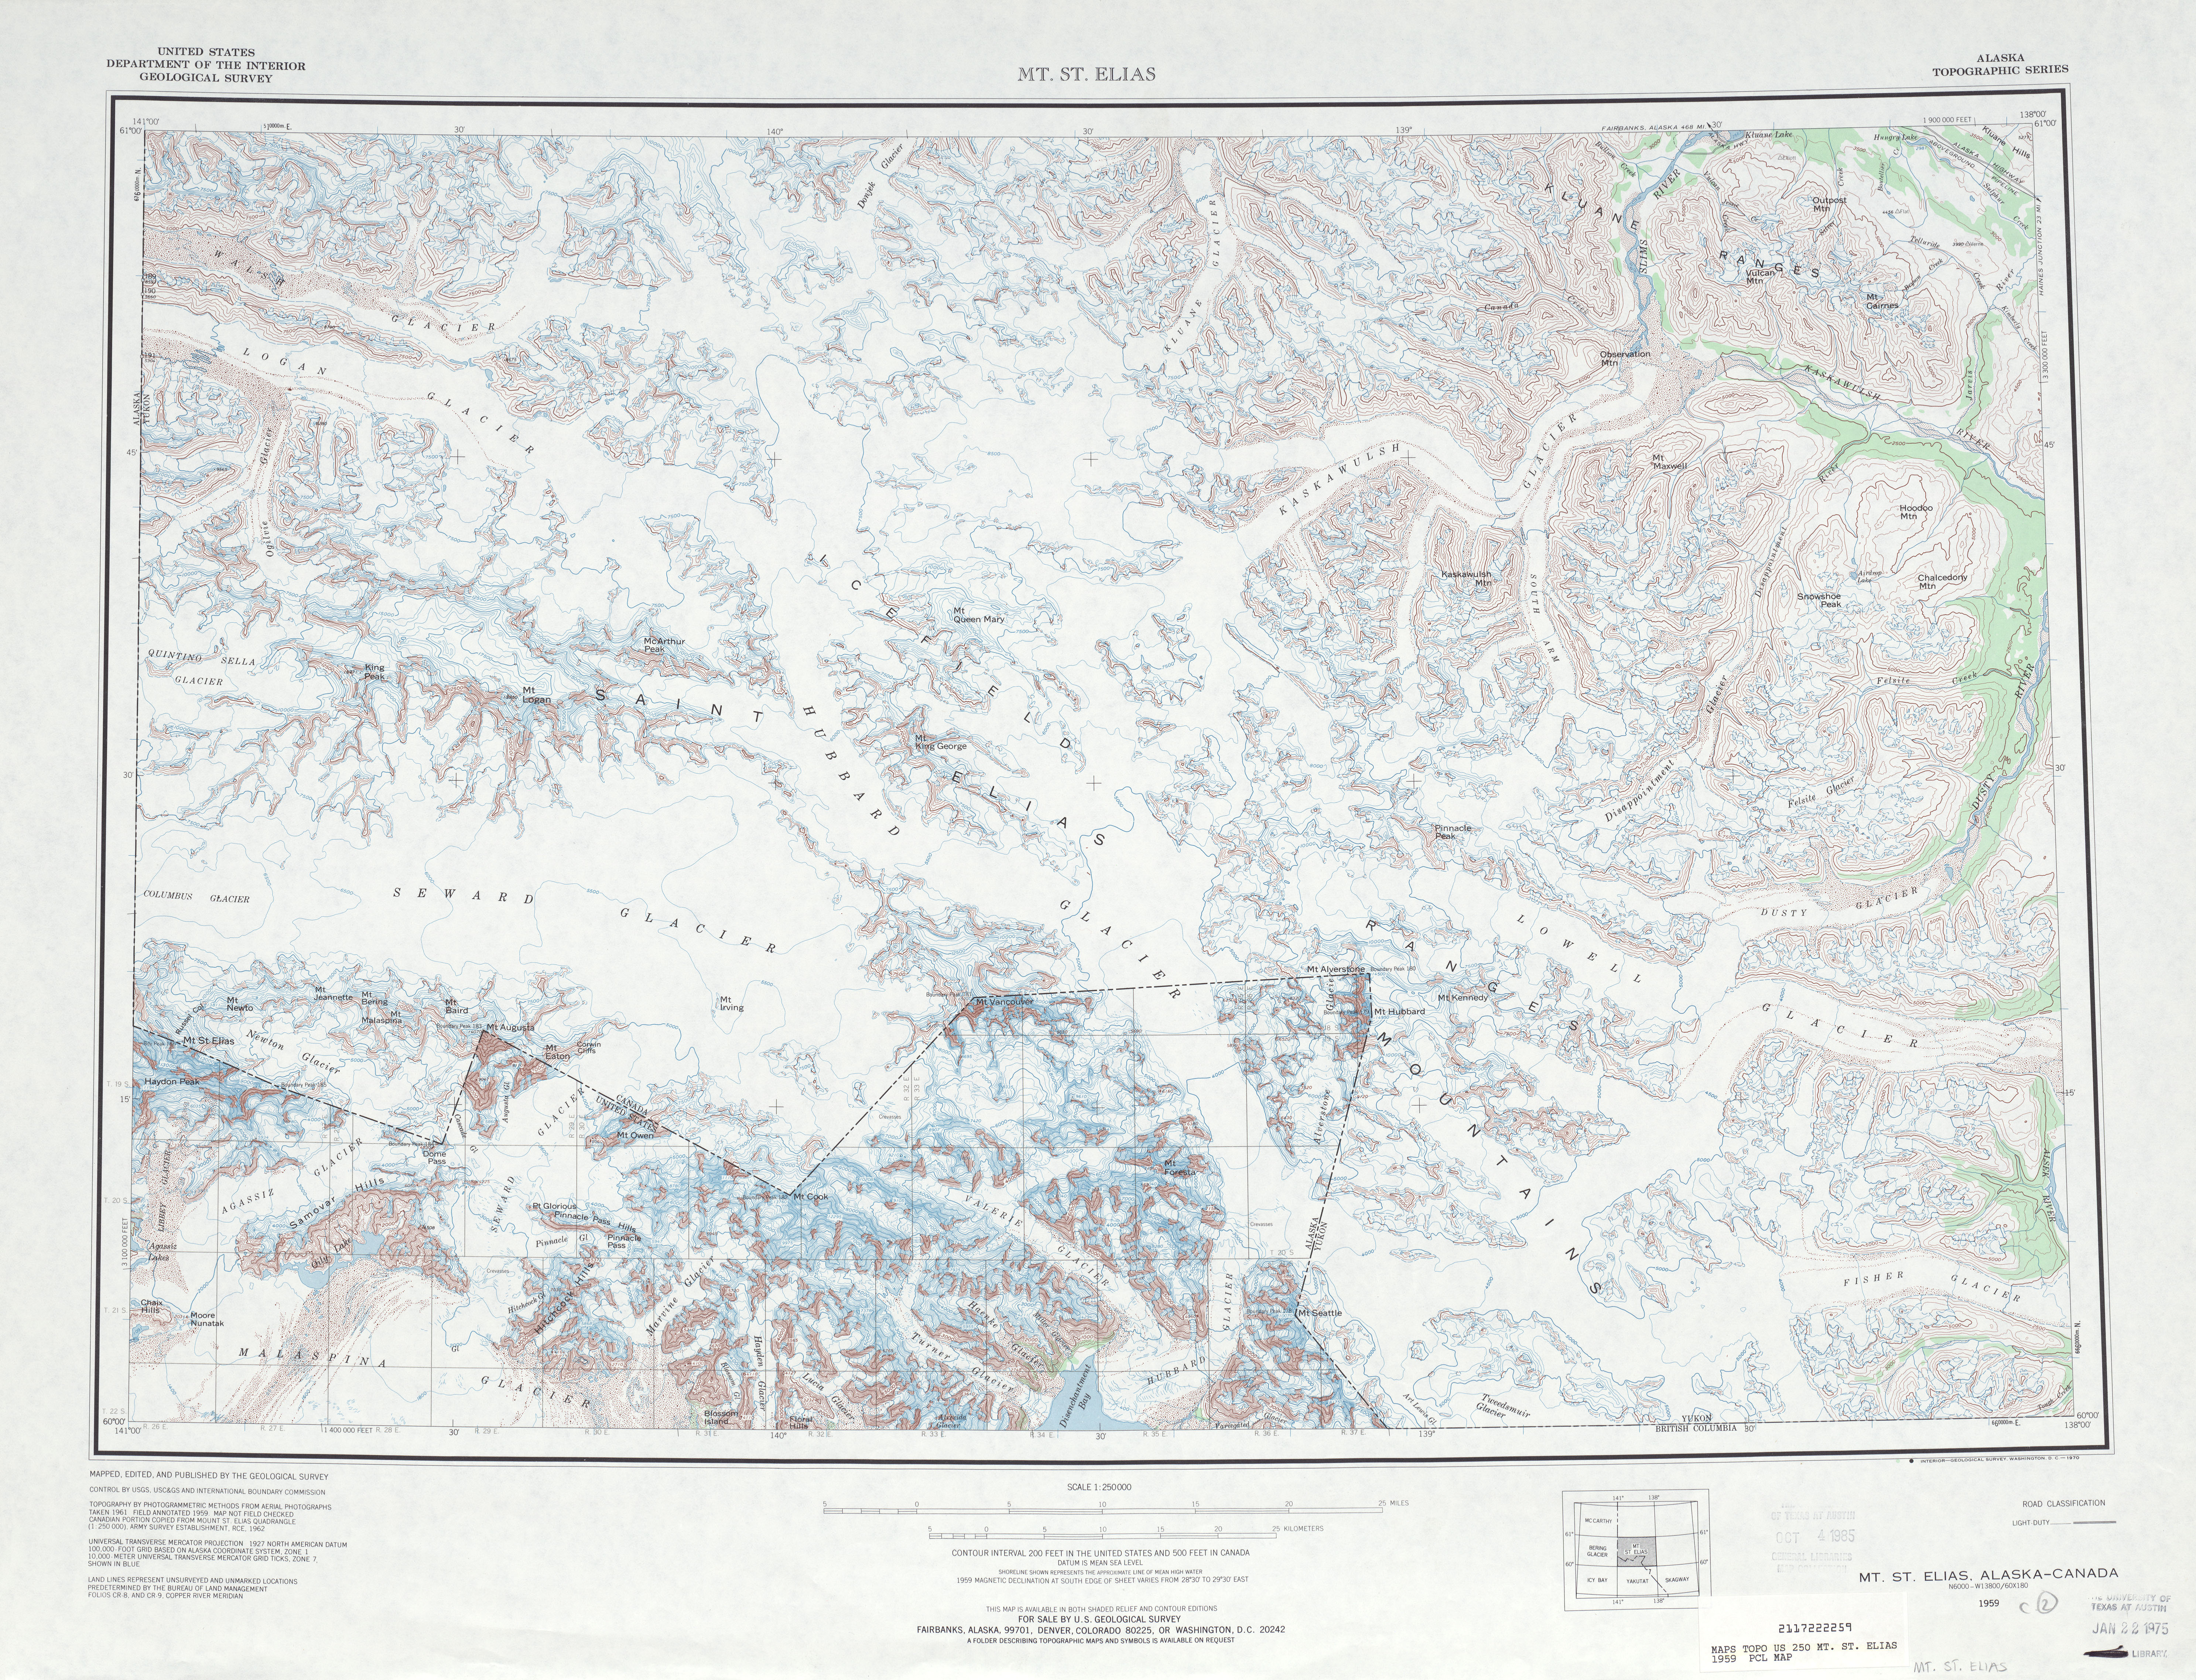 Mt. St Elias Topographic Map Sheet, United States 1959